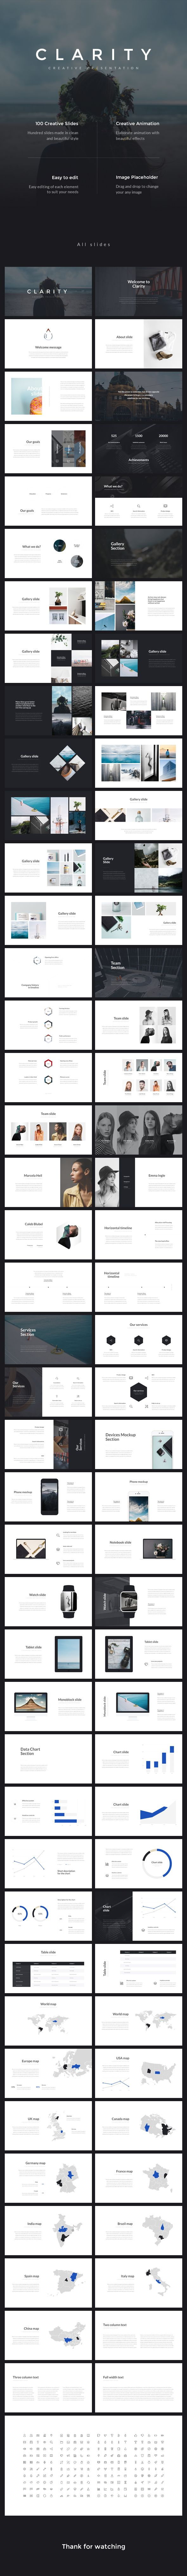 Company presentation template presentation templates template clarity keynote presentation toneelgroepblik Image collections